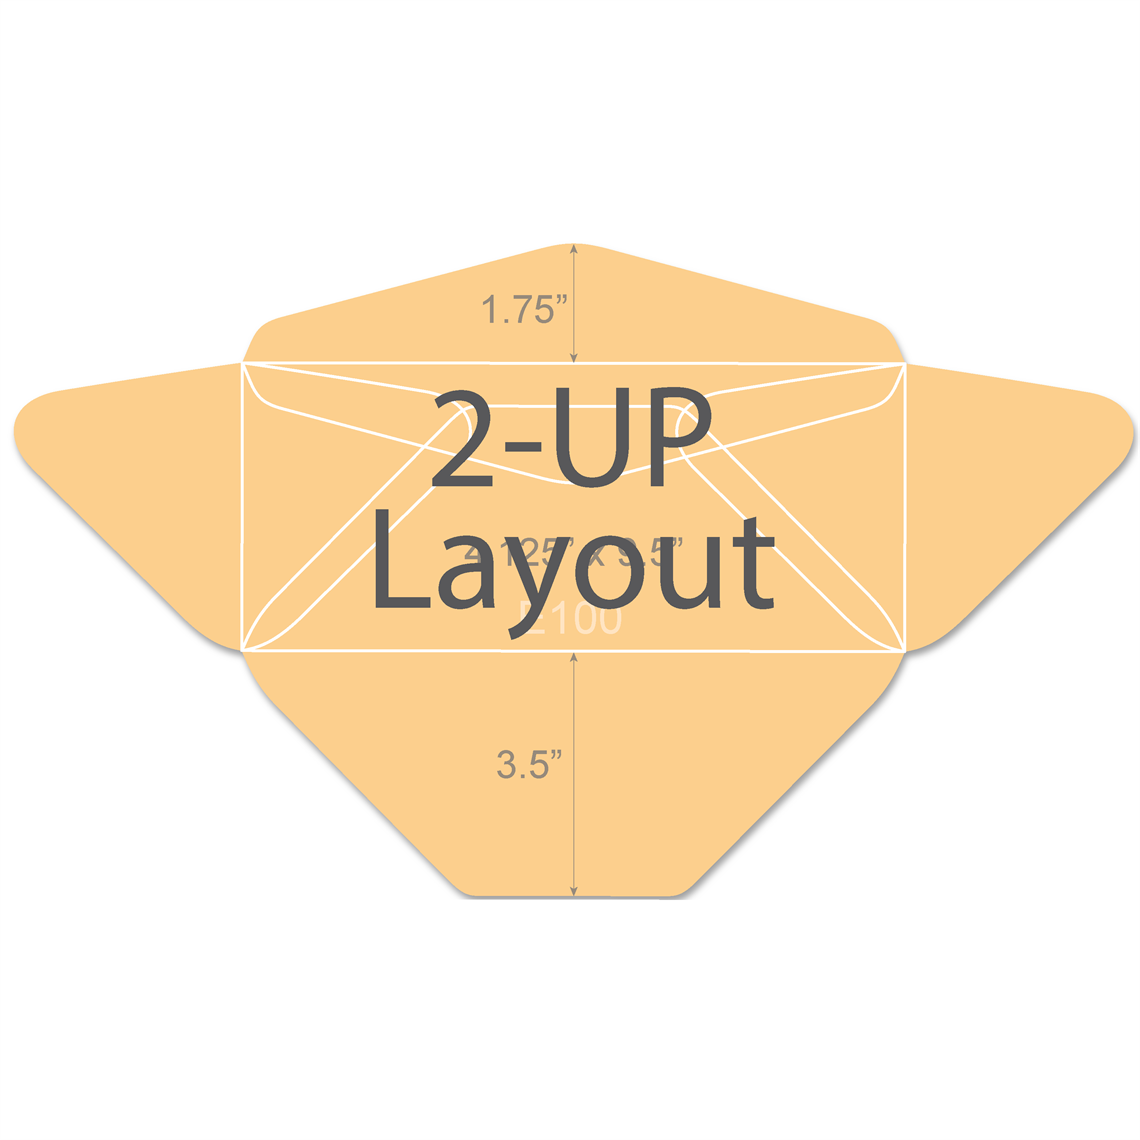 Picture Of 10 Diagonal Side Seam Envelope W 1 75 Seal Flap 2 Up Layout E100 Layout Ci Design Envelope